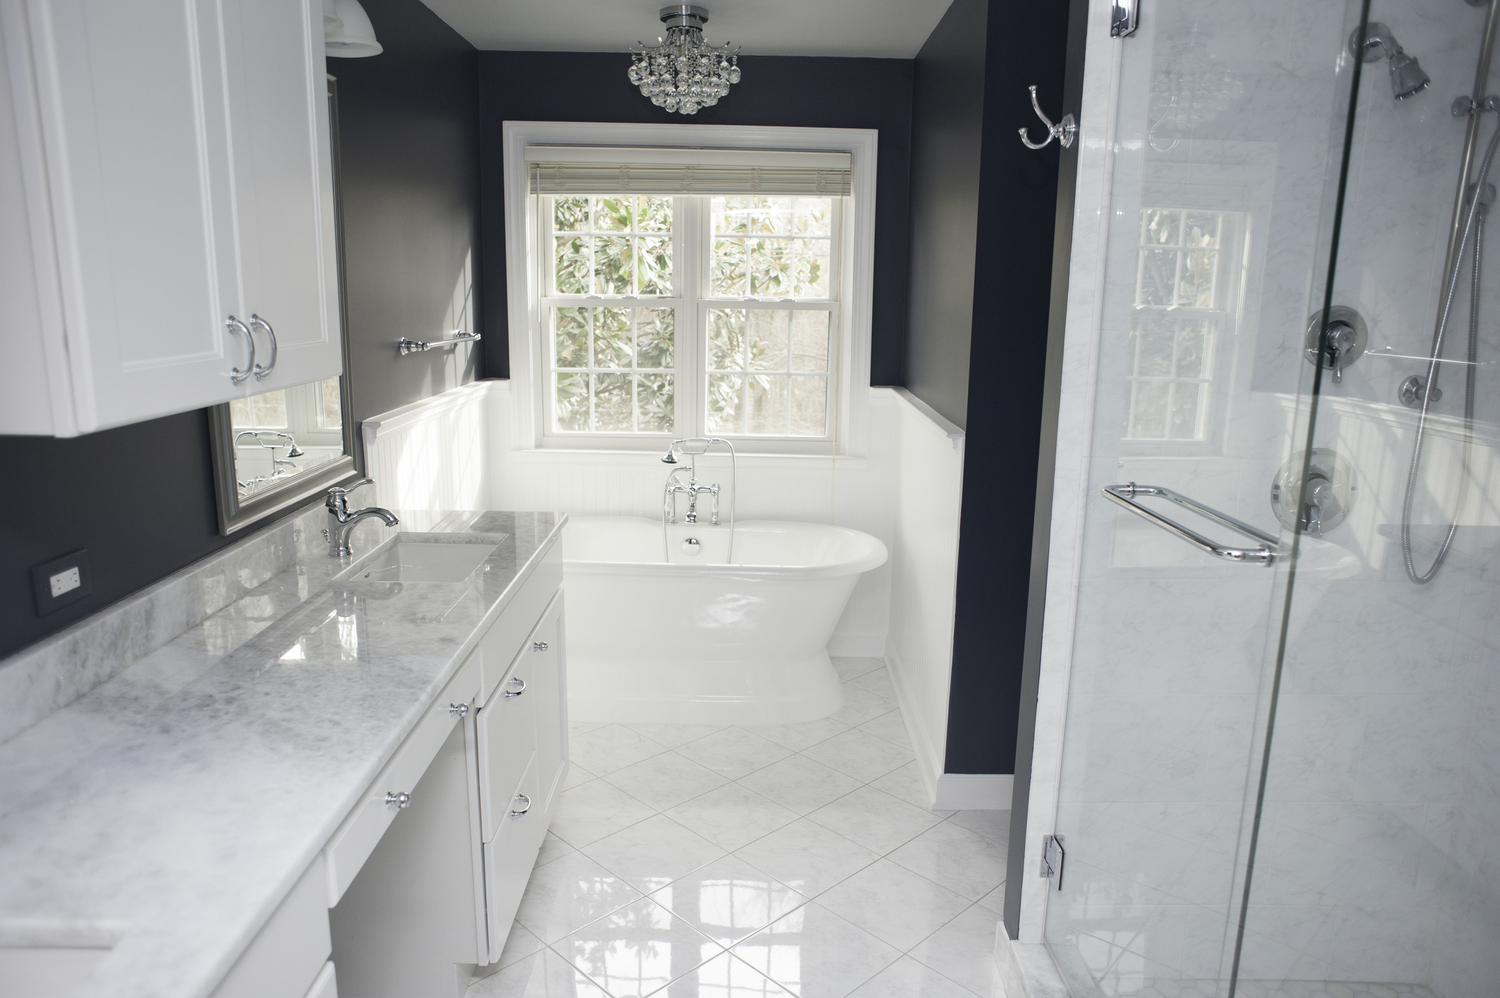 Bathroom+Renovation+Columbia+MD+by+Euro+Design+Remodel.jpg